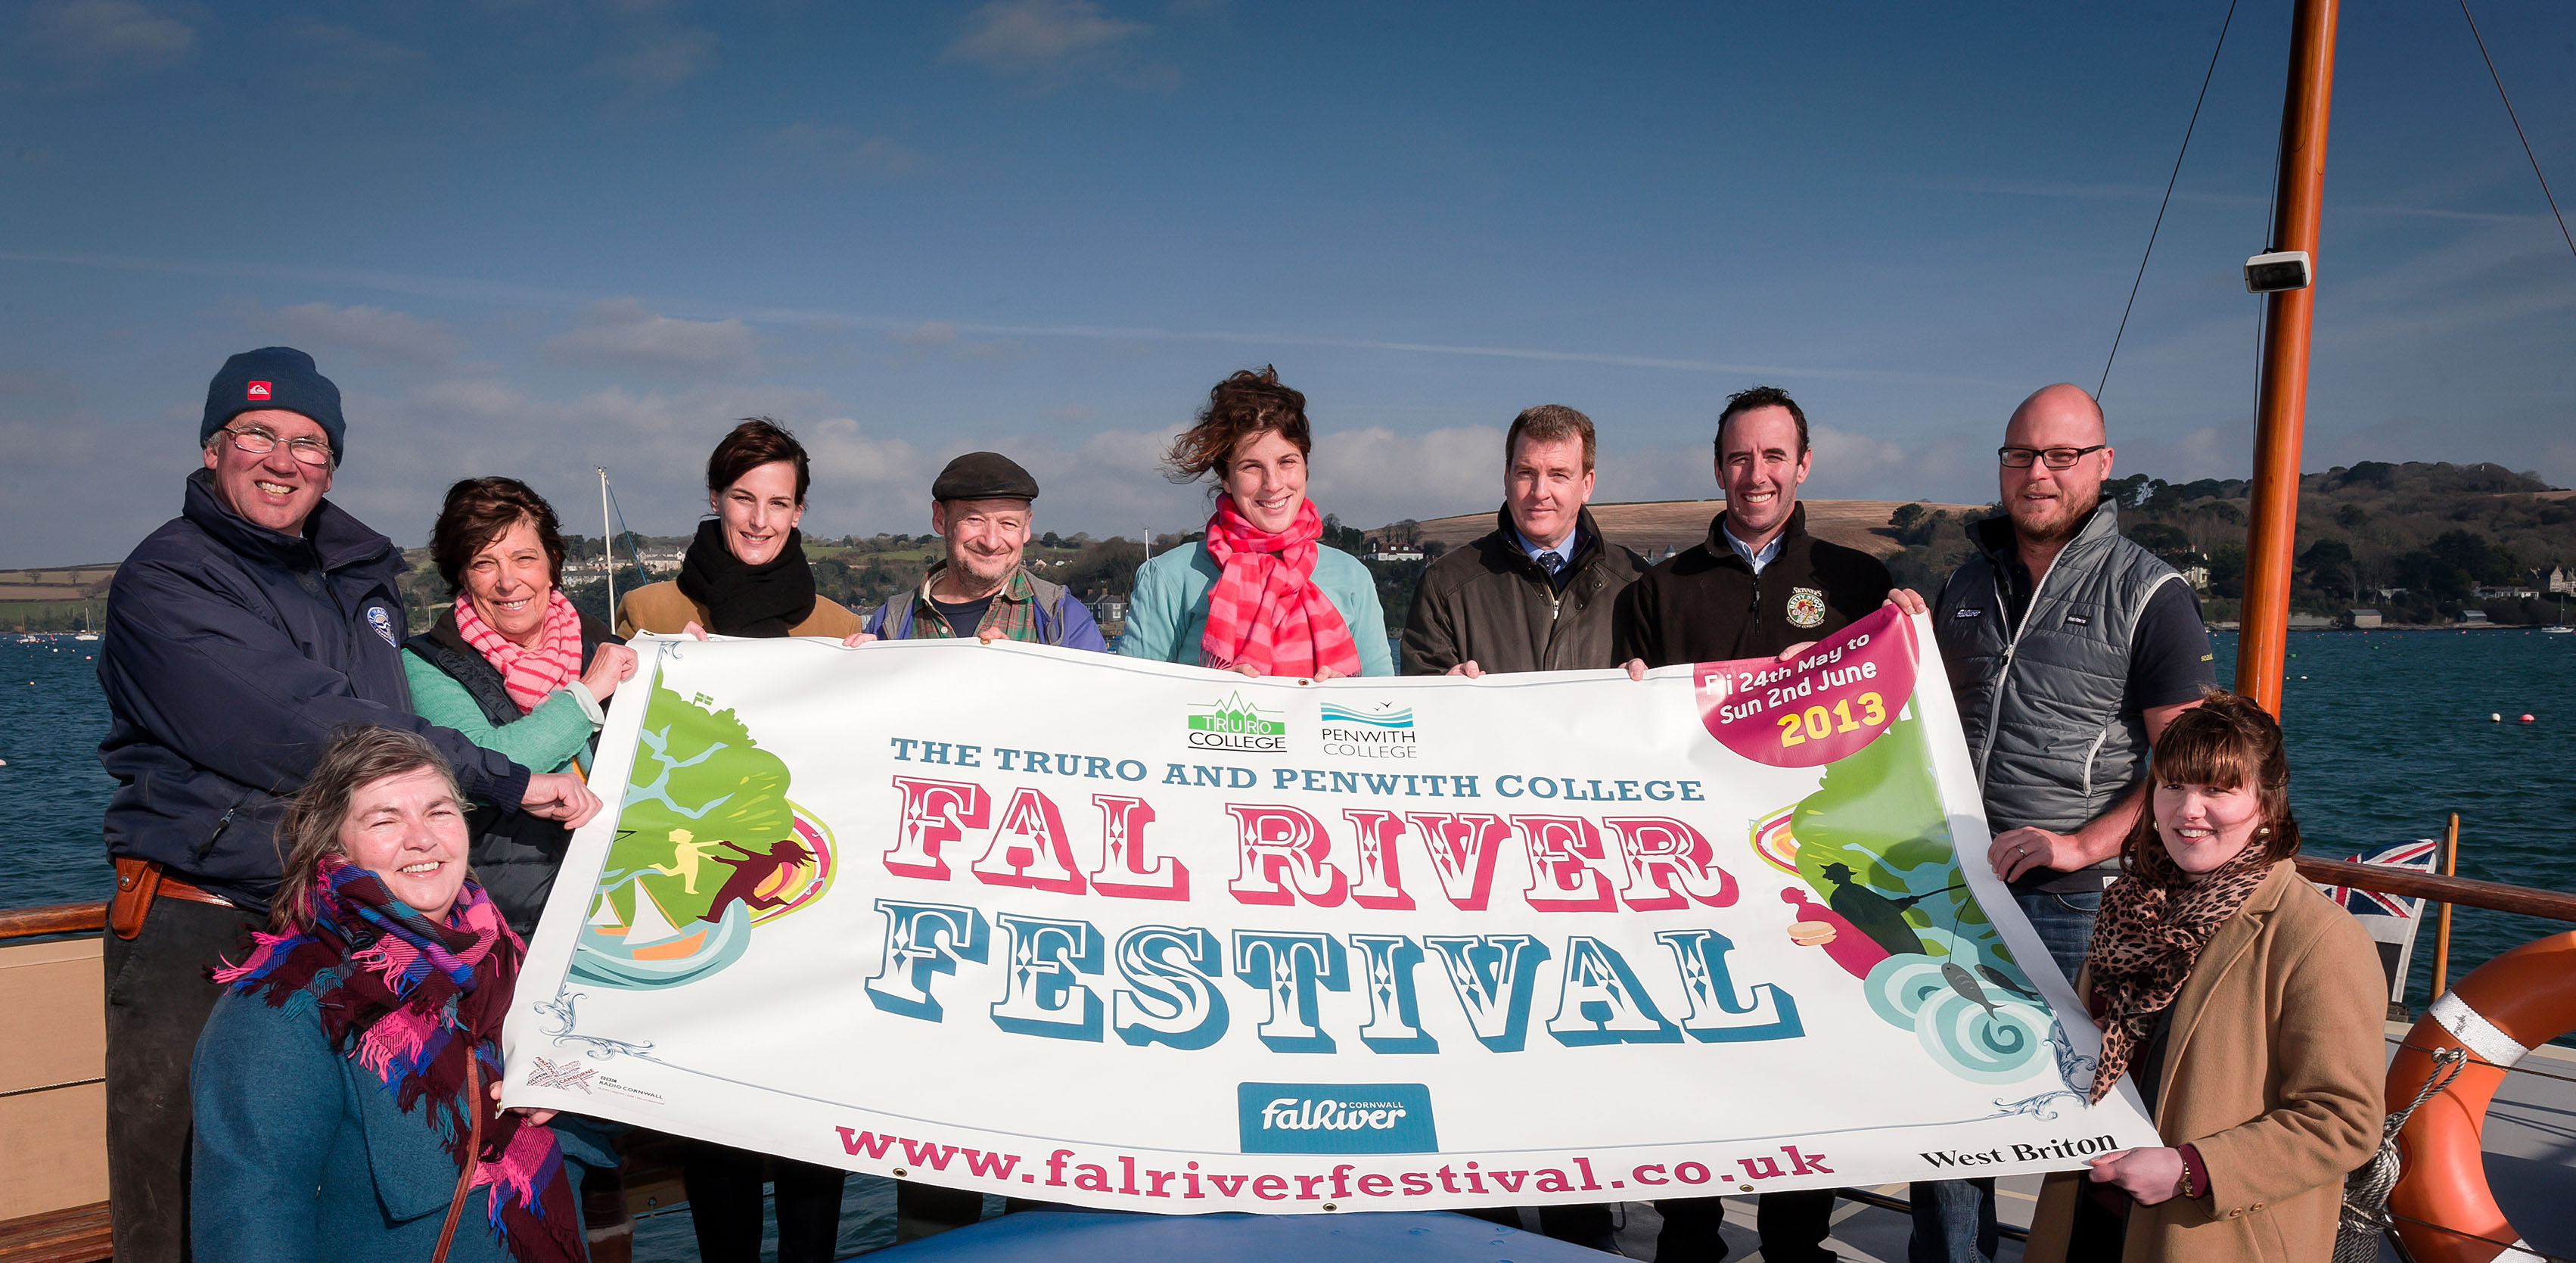 The Fal River Festival team officially unveil details of the 2013 event